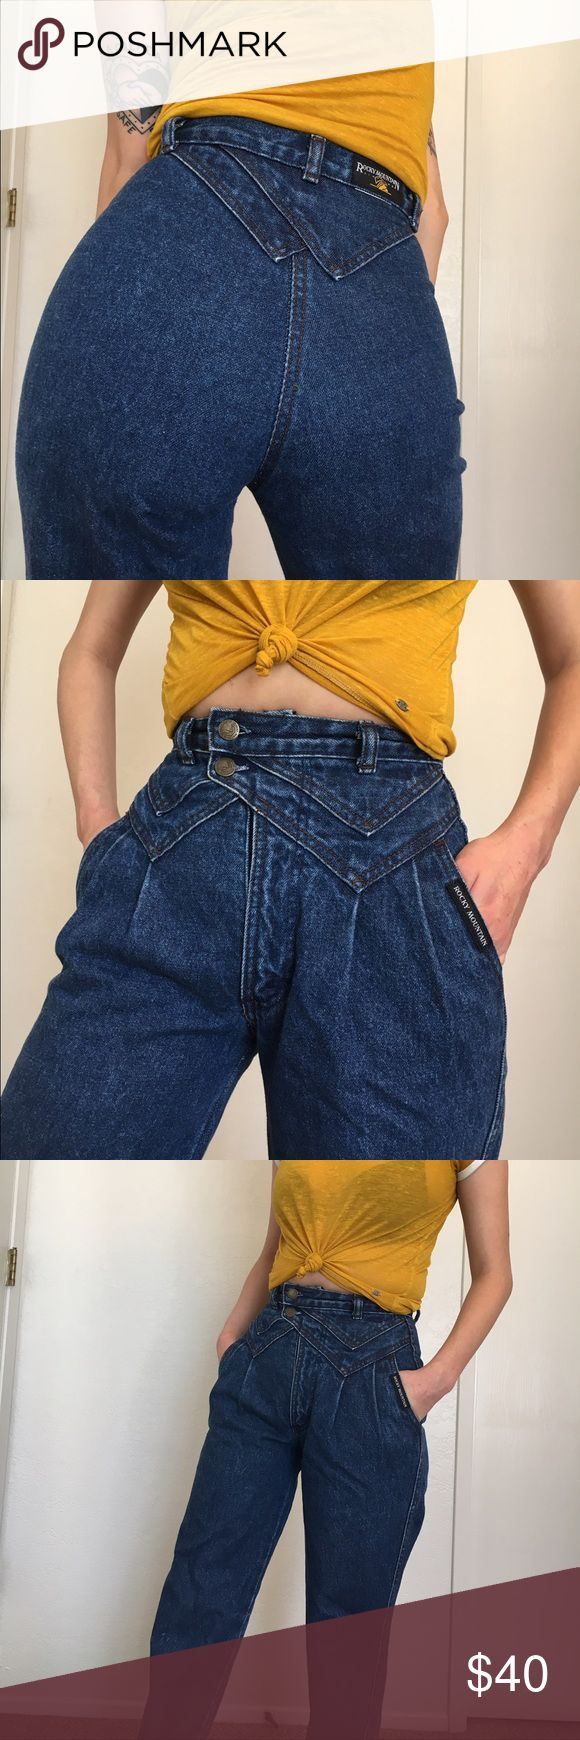 Vintage Rocky Mountain Jeans Super high waisted Rocky Moutan jeans! They zip up in the front and have two buttons on the side. They are in perfect condition, vintage jeans last forever!! #Levis #wranglers Jeans Boot Cut